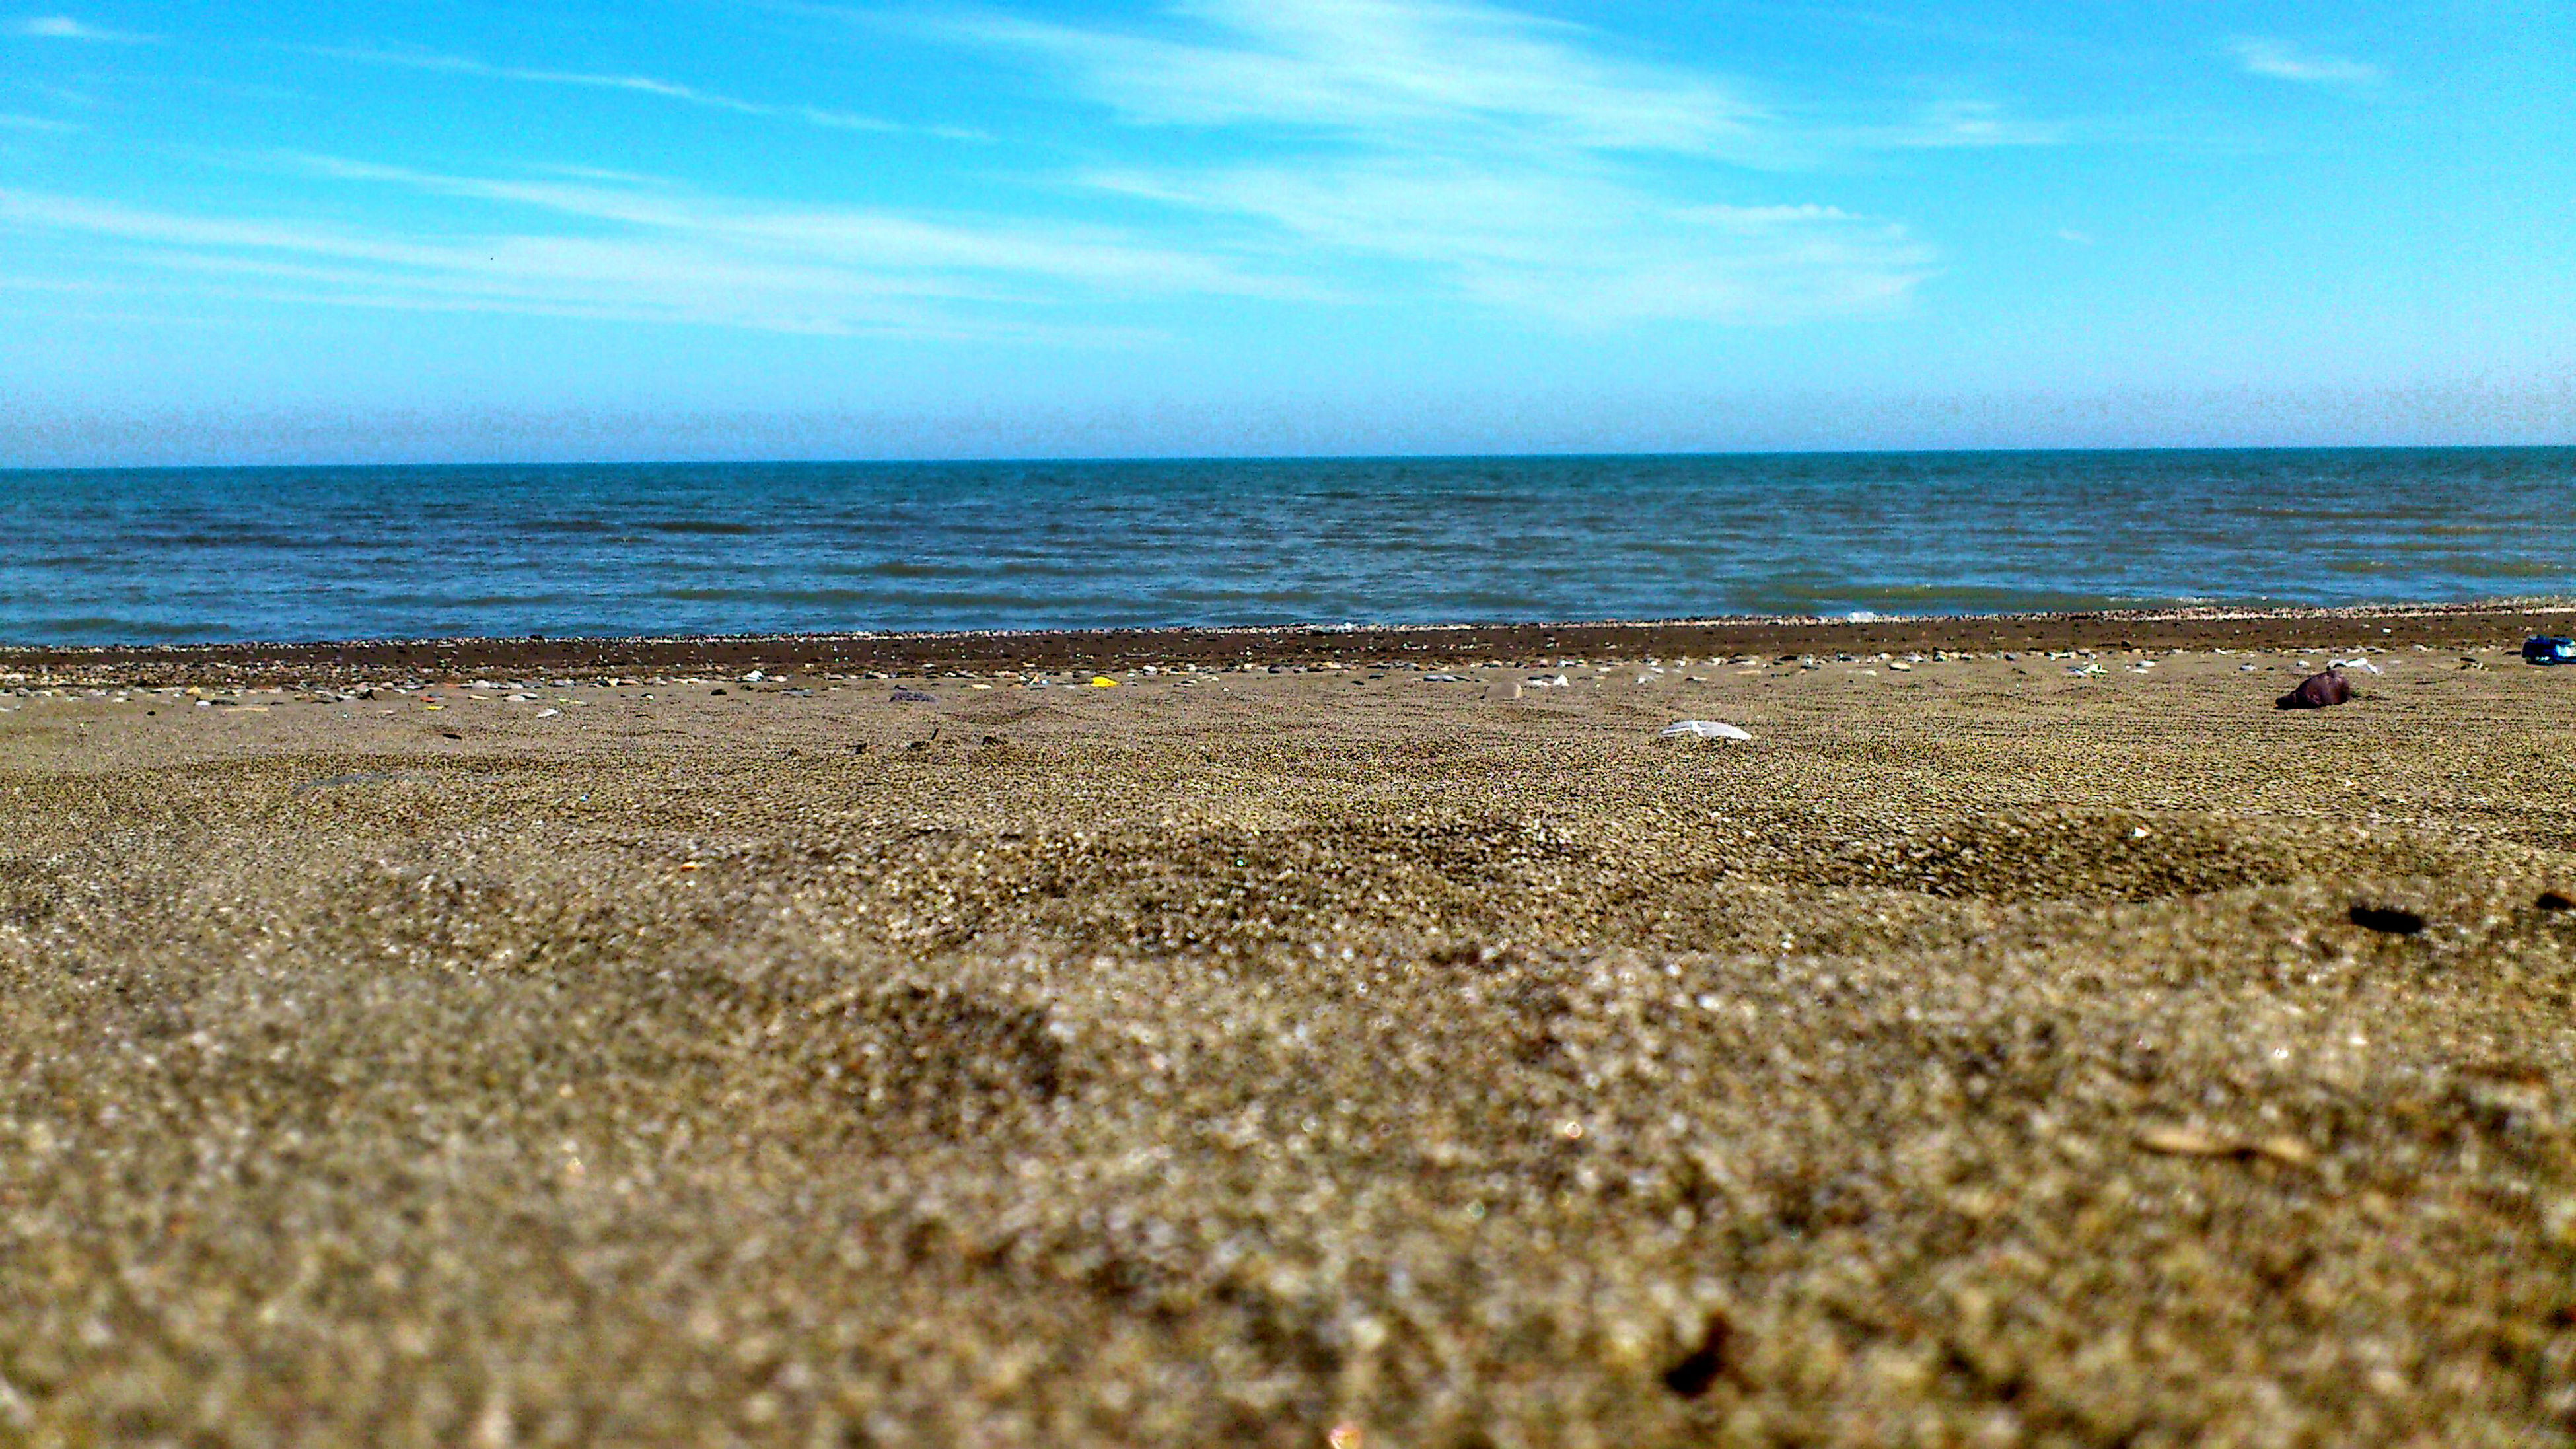 sea, beach, horizon over water, sand, water, sky, shore, tranquil scene, scenics, tranquility, surface level, beauty in nature, nature, blue, idyllic, cloud, wave, pebble, cloud - sky, day